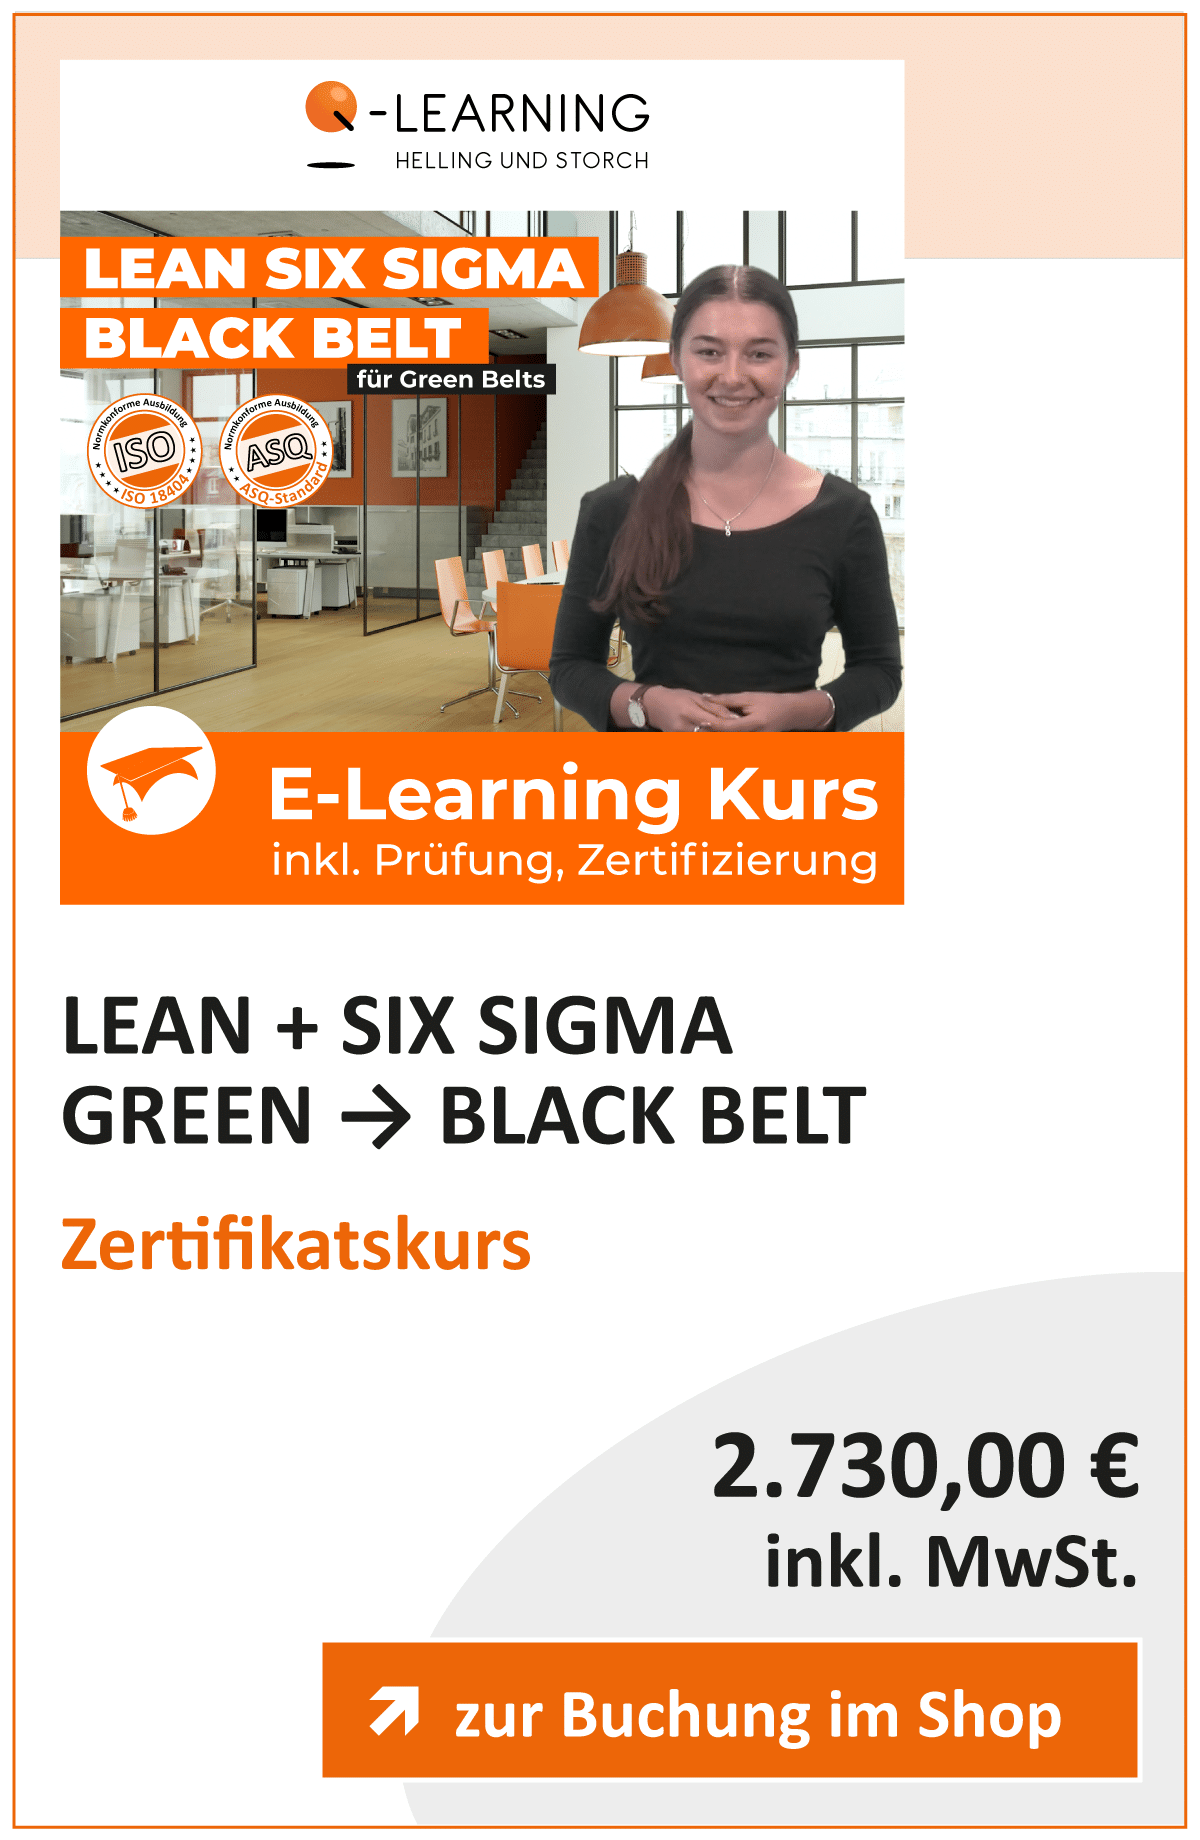 Produktbox LEAN SIX SIGMA Black Belt für Green Belts